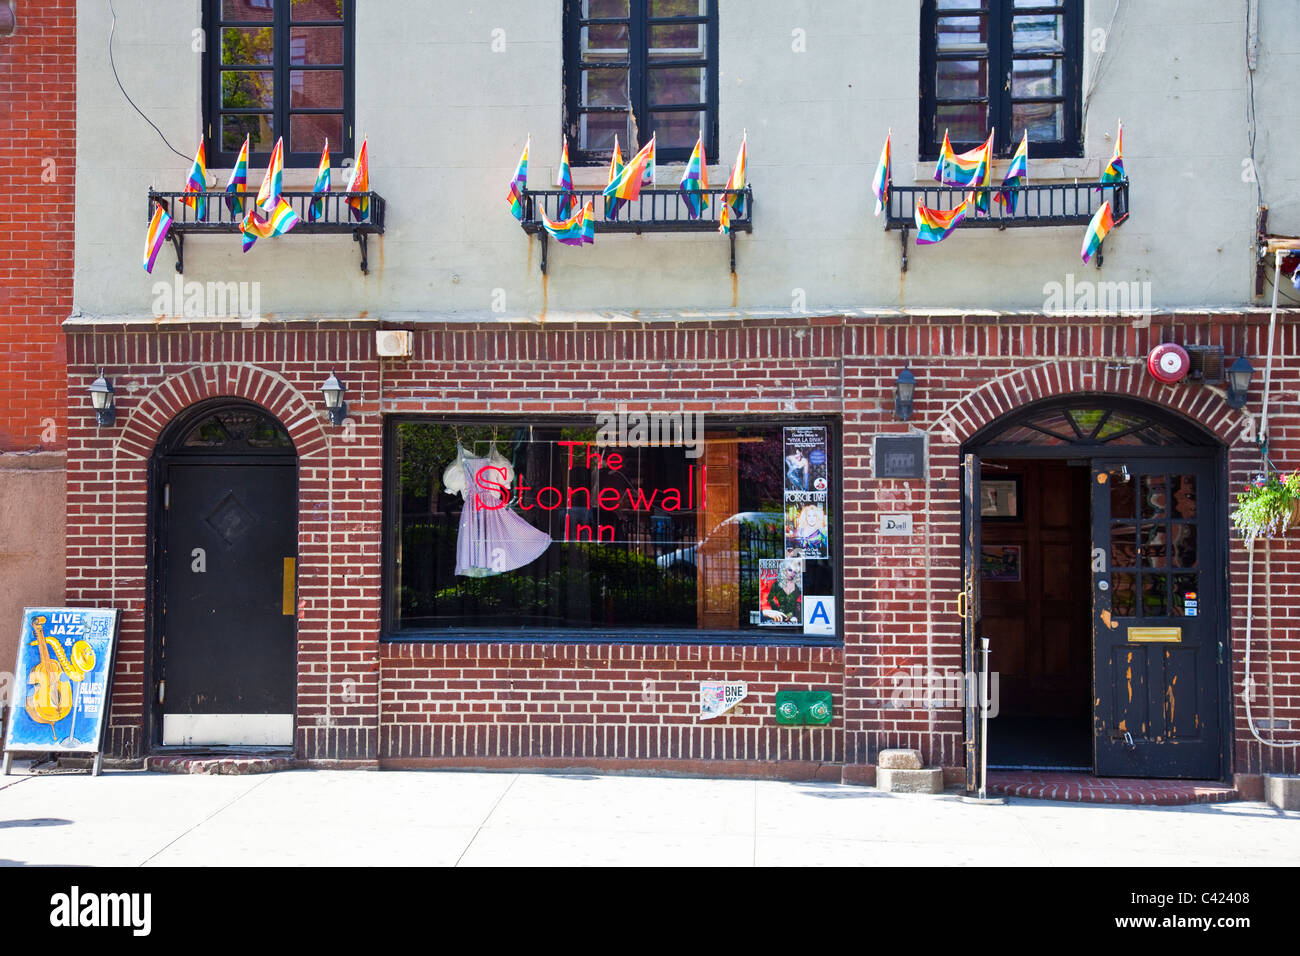 The Stonewall Inn historic gay bar in Greenwich Village, Manhattan, New York - Stock Image